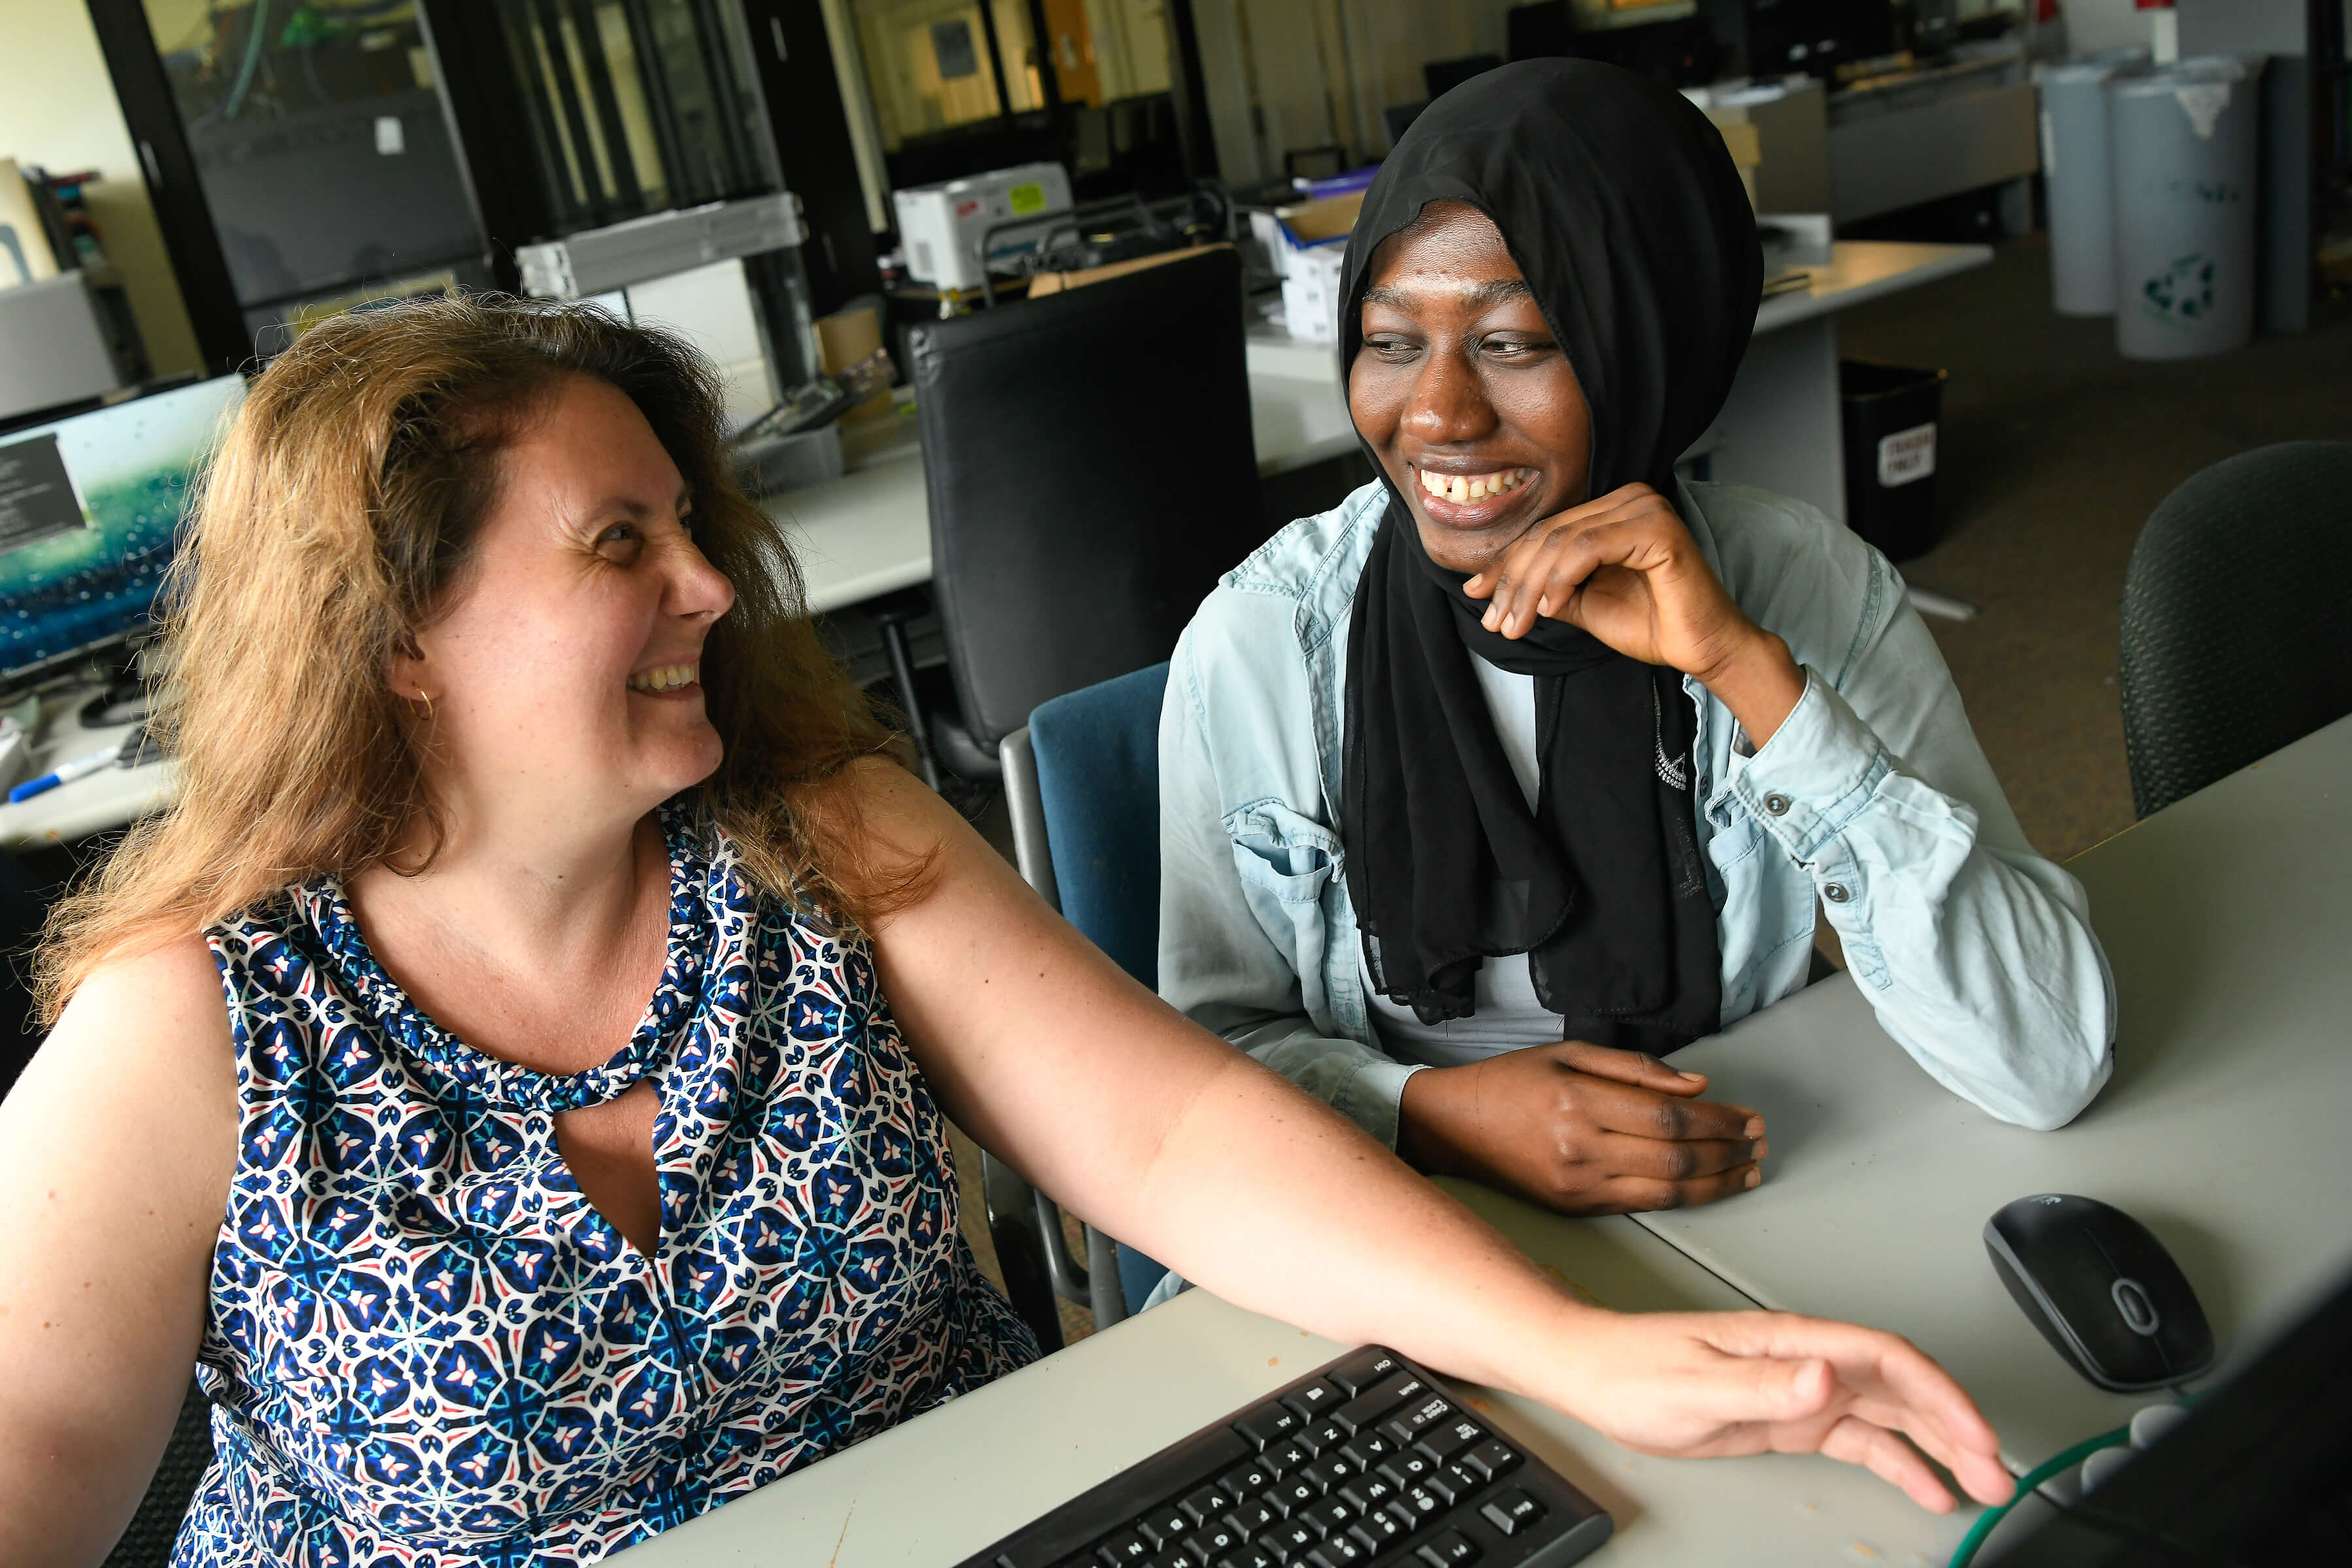 Clarkson University: Developing computer science experts through project-based learning